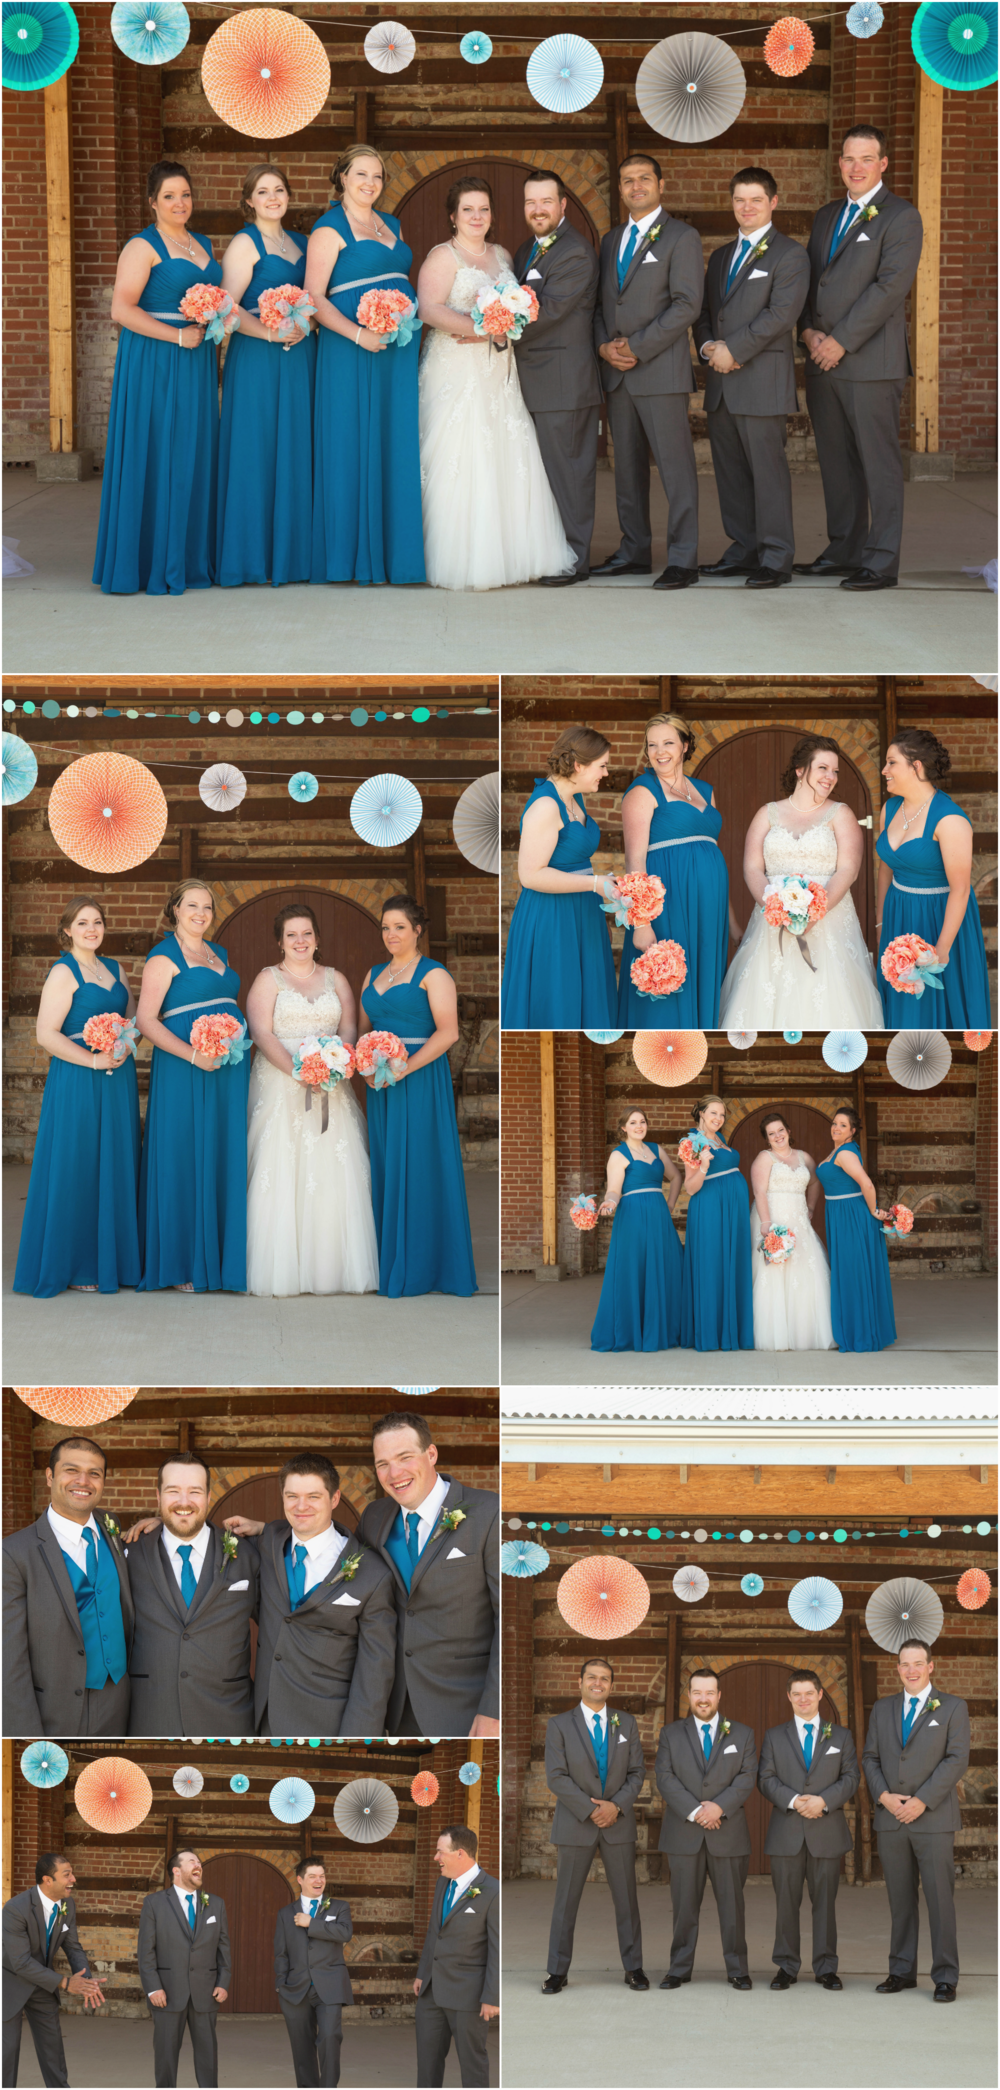 medalta_wedding_medicine_hat_09.png